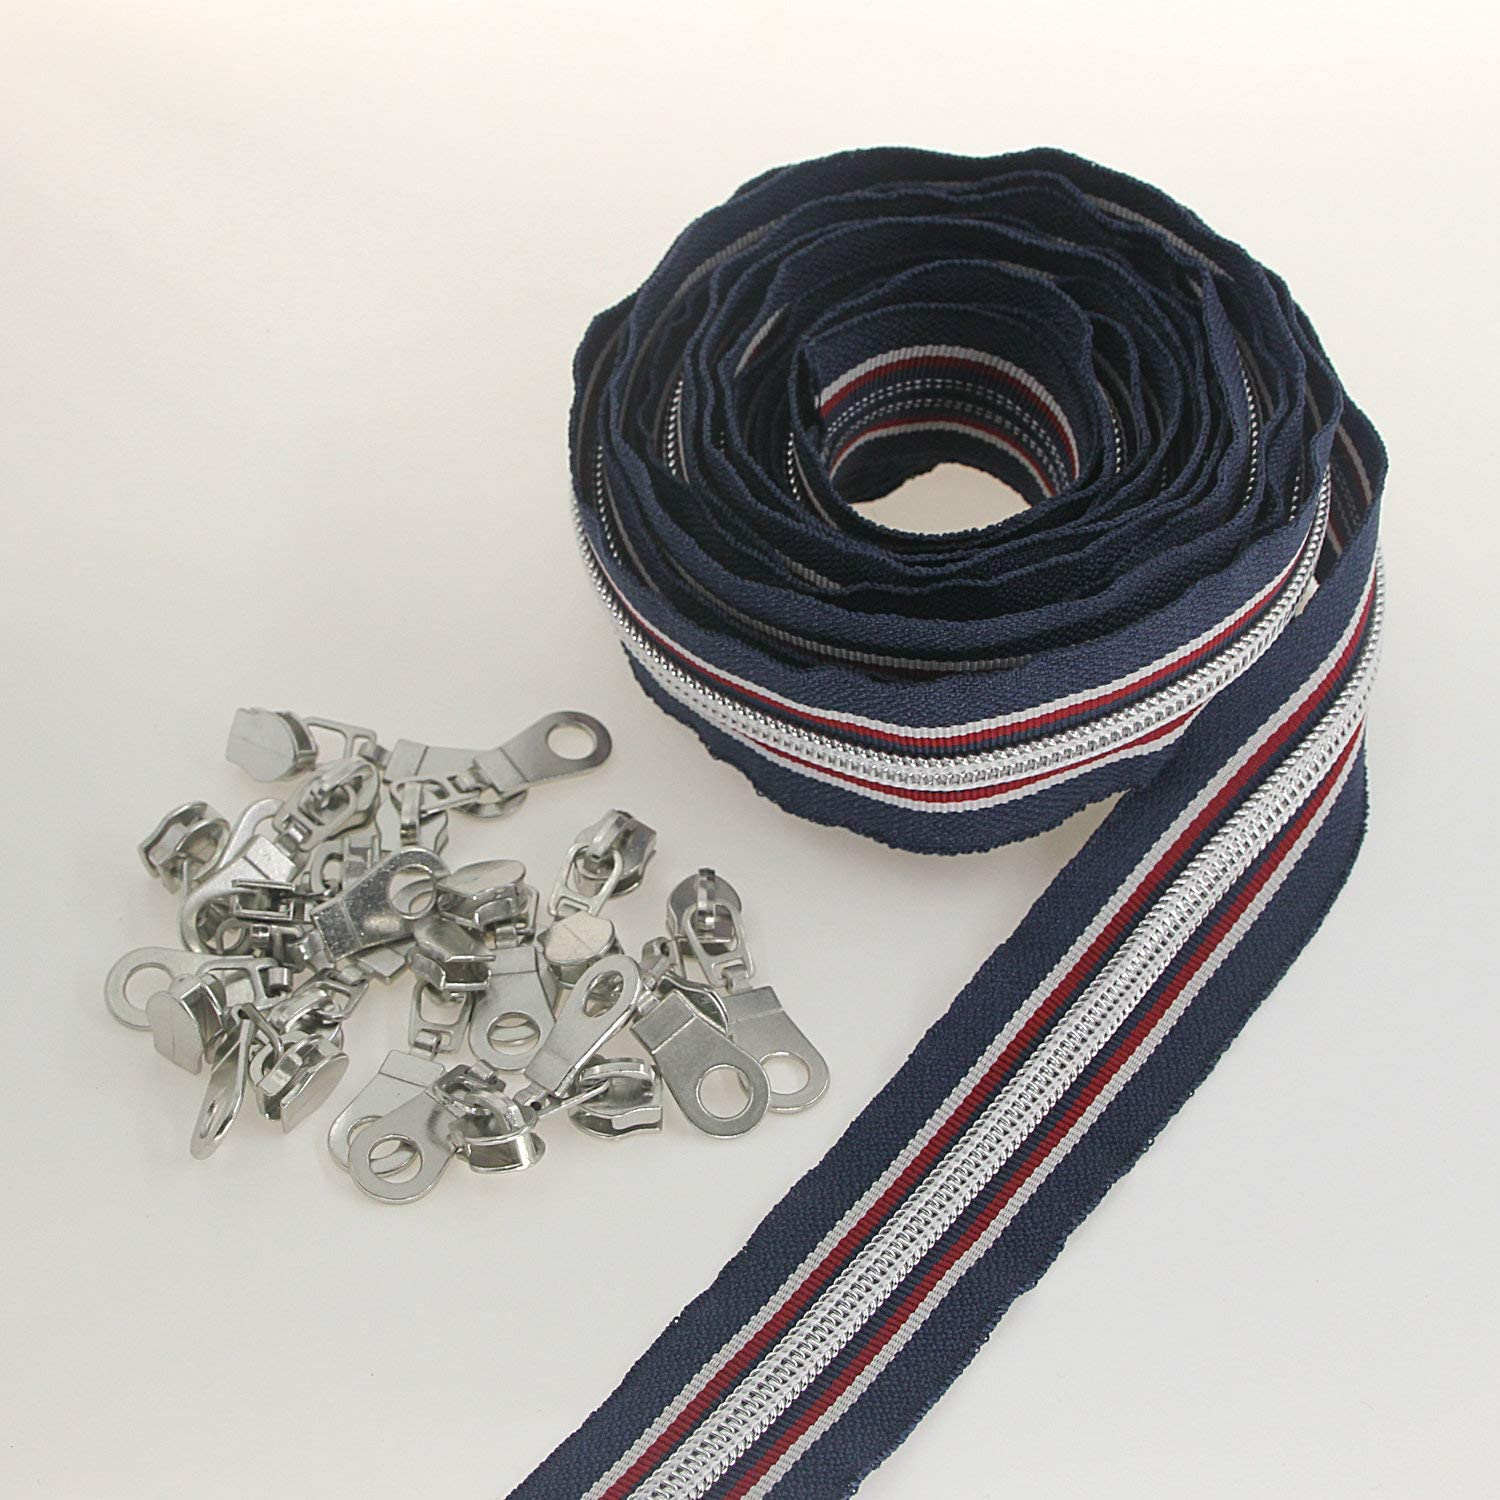 #5 Nylon Zippers for Sewing Silver Teeth Zipper Bulk 10 Yards Black/&Grey/&Blue Colcrs Tape with 25pcs Sliders Coil Zipper for DIY Sewing Tailor Craft Bag,Sports Suits New Style Leekayer